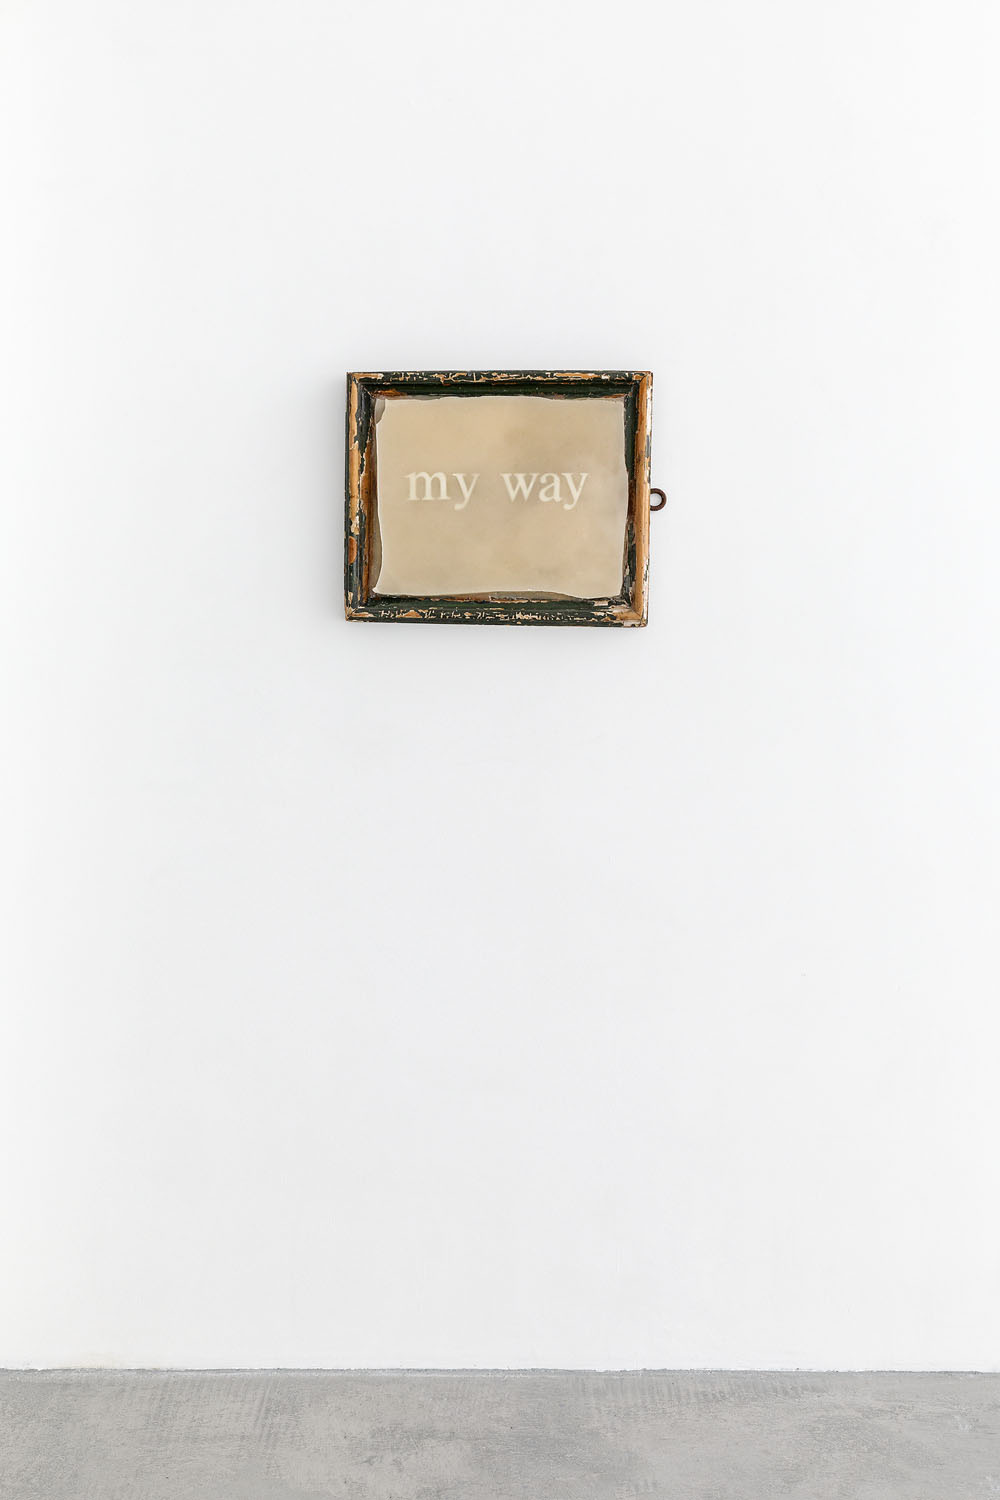 MY WAY, 2018  Wax, vintage frame, fluorescent word 45 x 50 cm  Courtesy the artist and Rabouan Moussion Gallery Photo Credit : Romain Darnaud